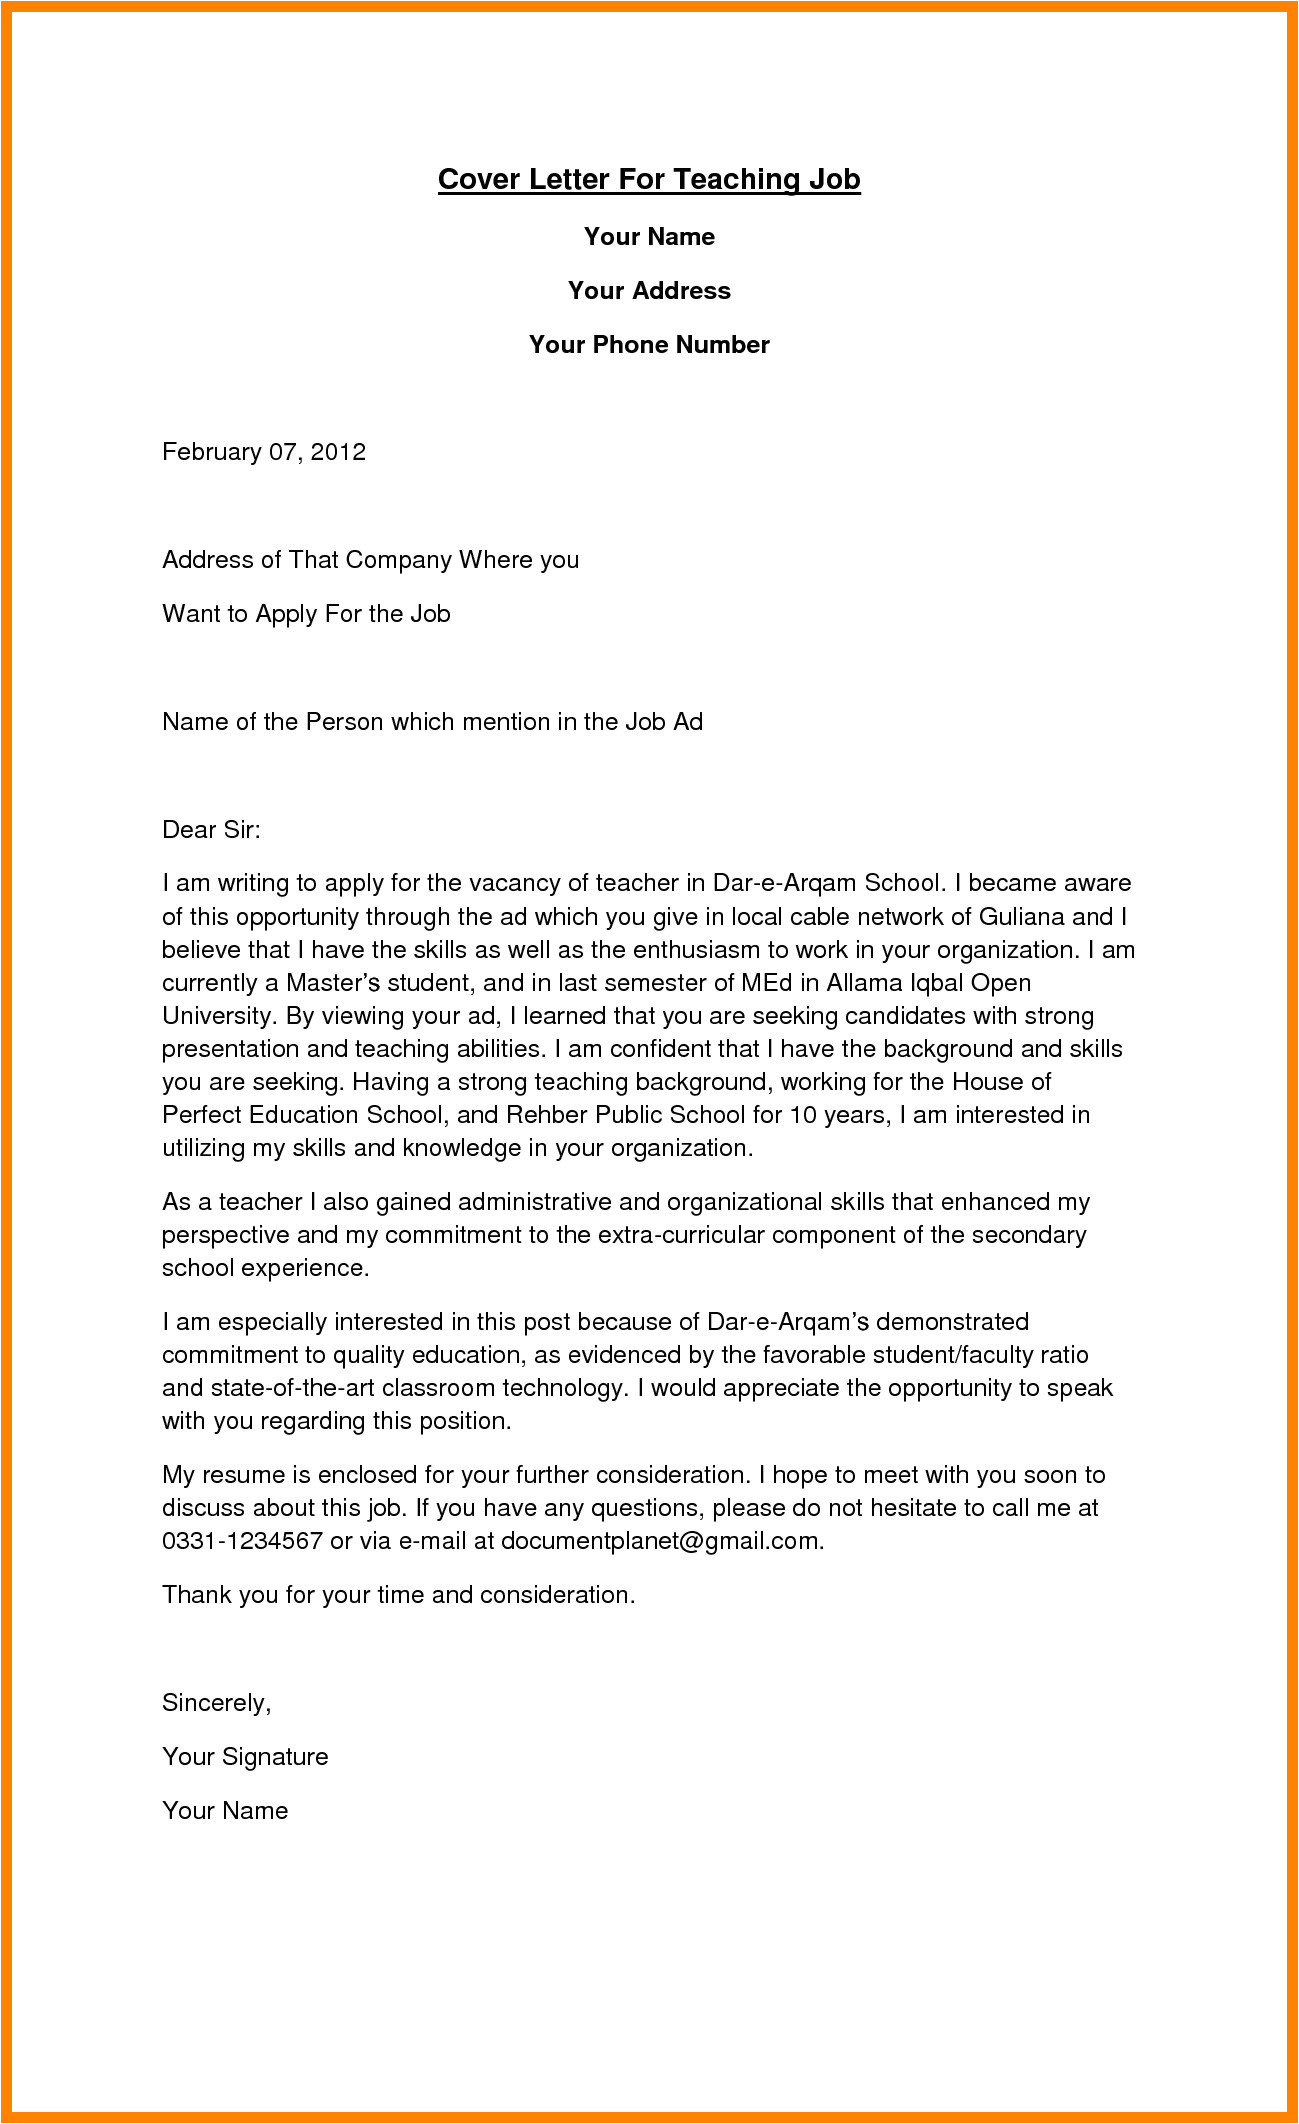 How to Write An Education Cover Letter 12 Employment Letter as A Teacher Bike Friendly Windsor